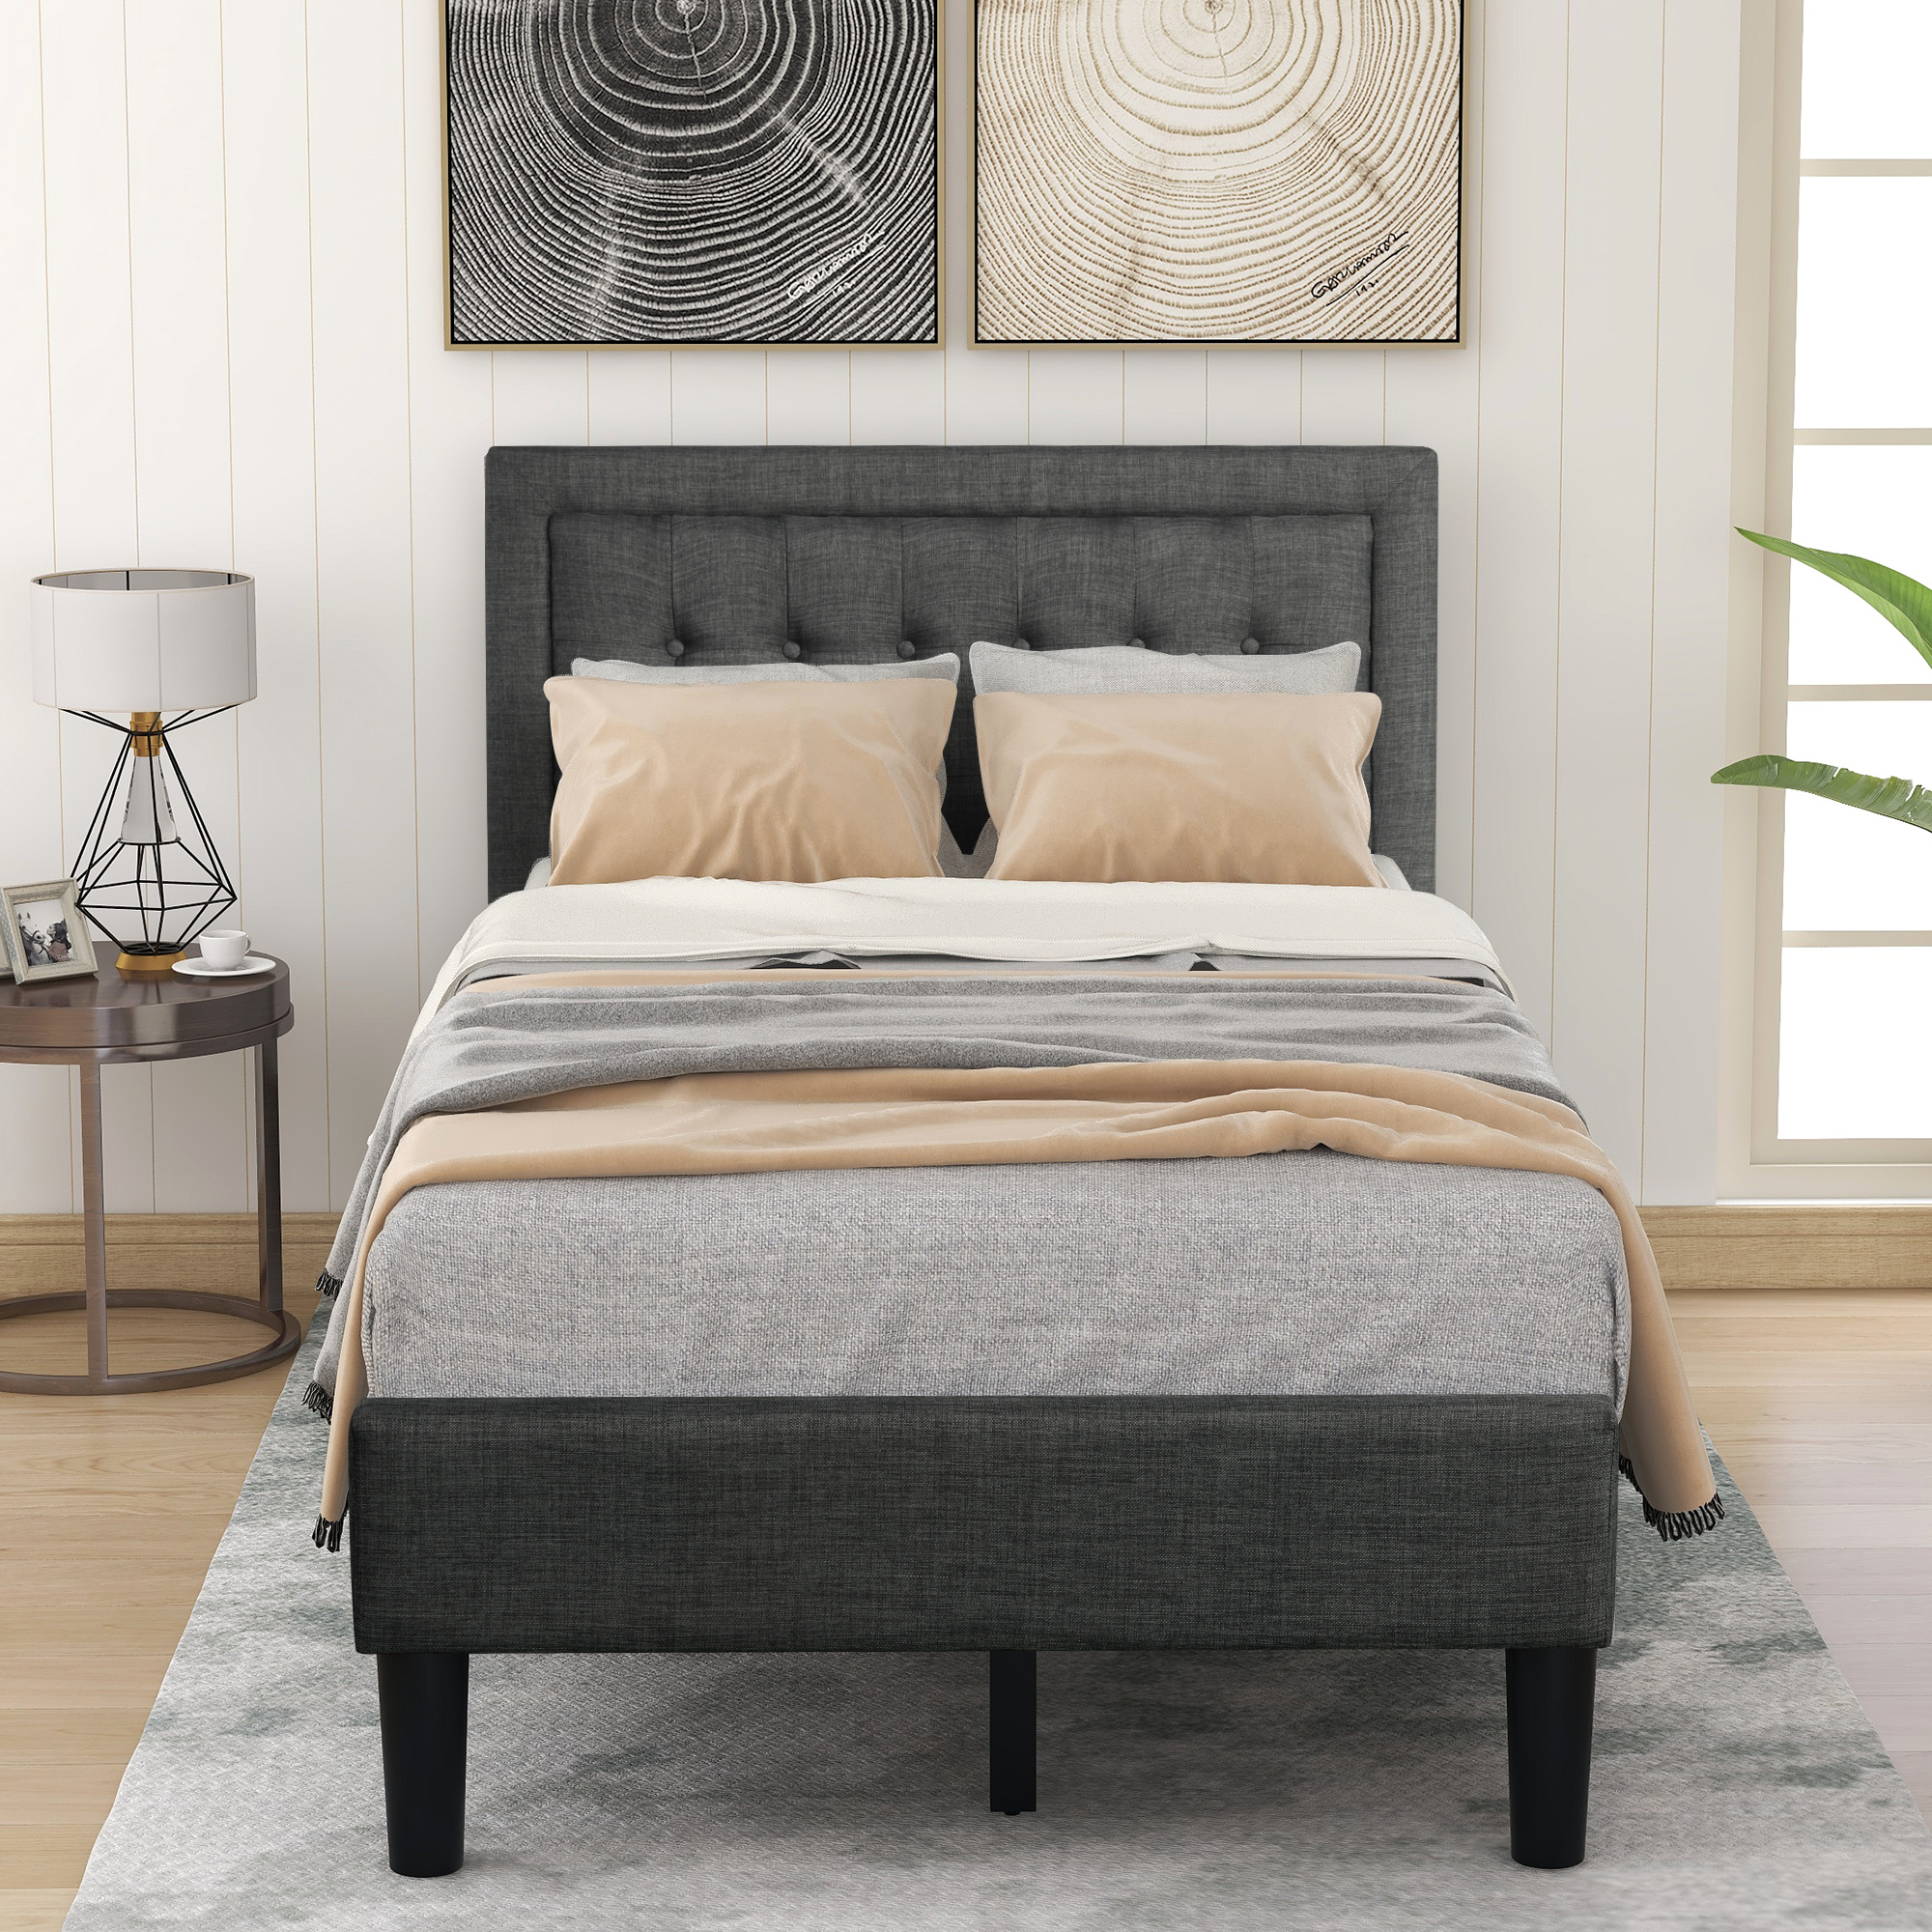 Urhomepro Twin Bed Frame With Headboard Upholstered Twin Platform Bed Frame W Wooden Slat No Box Spring Needed Great For Boys Girls Kids Teens Adults Bedroom Furniture Gray W11831 Walmart Com